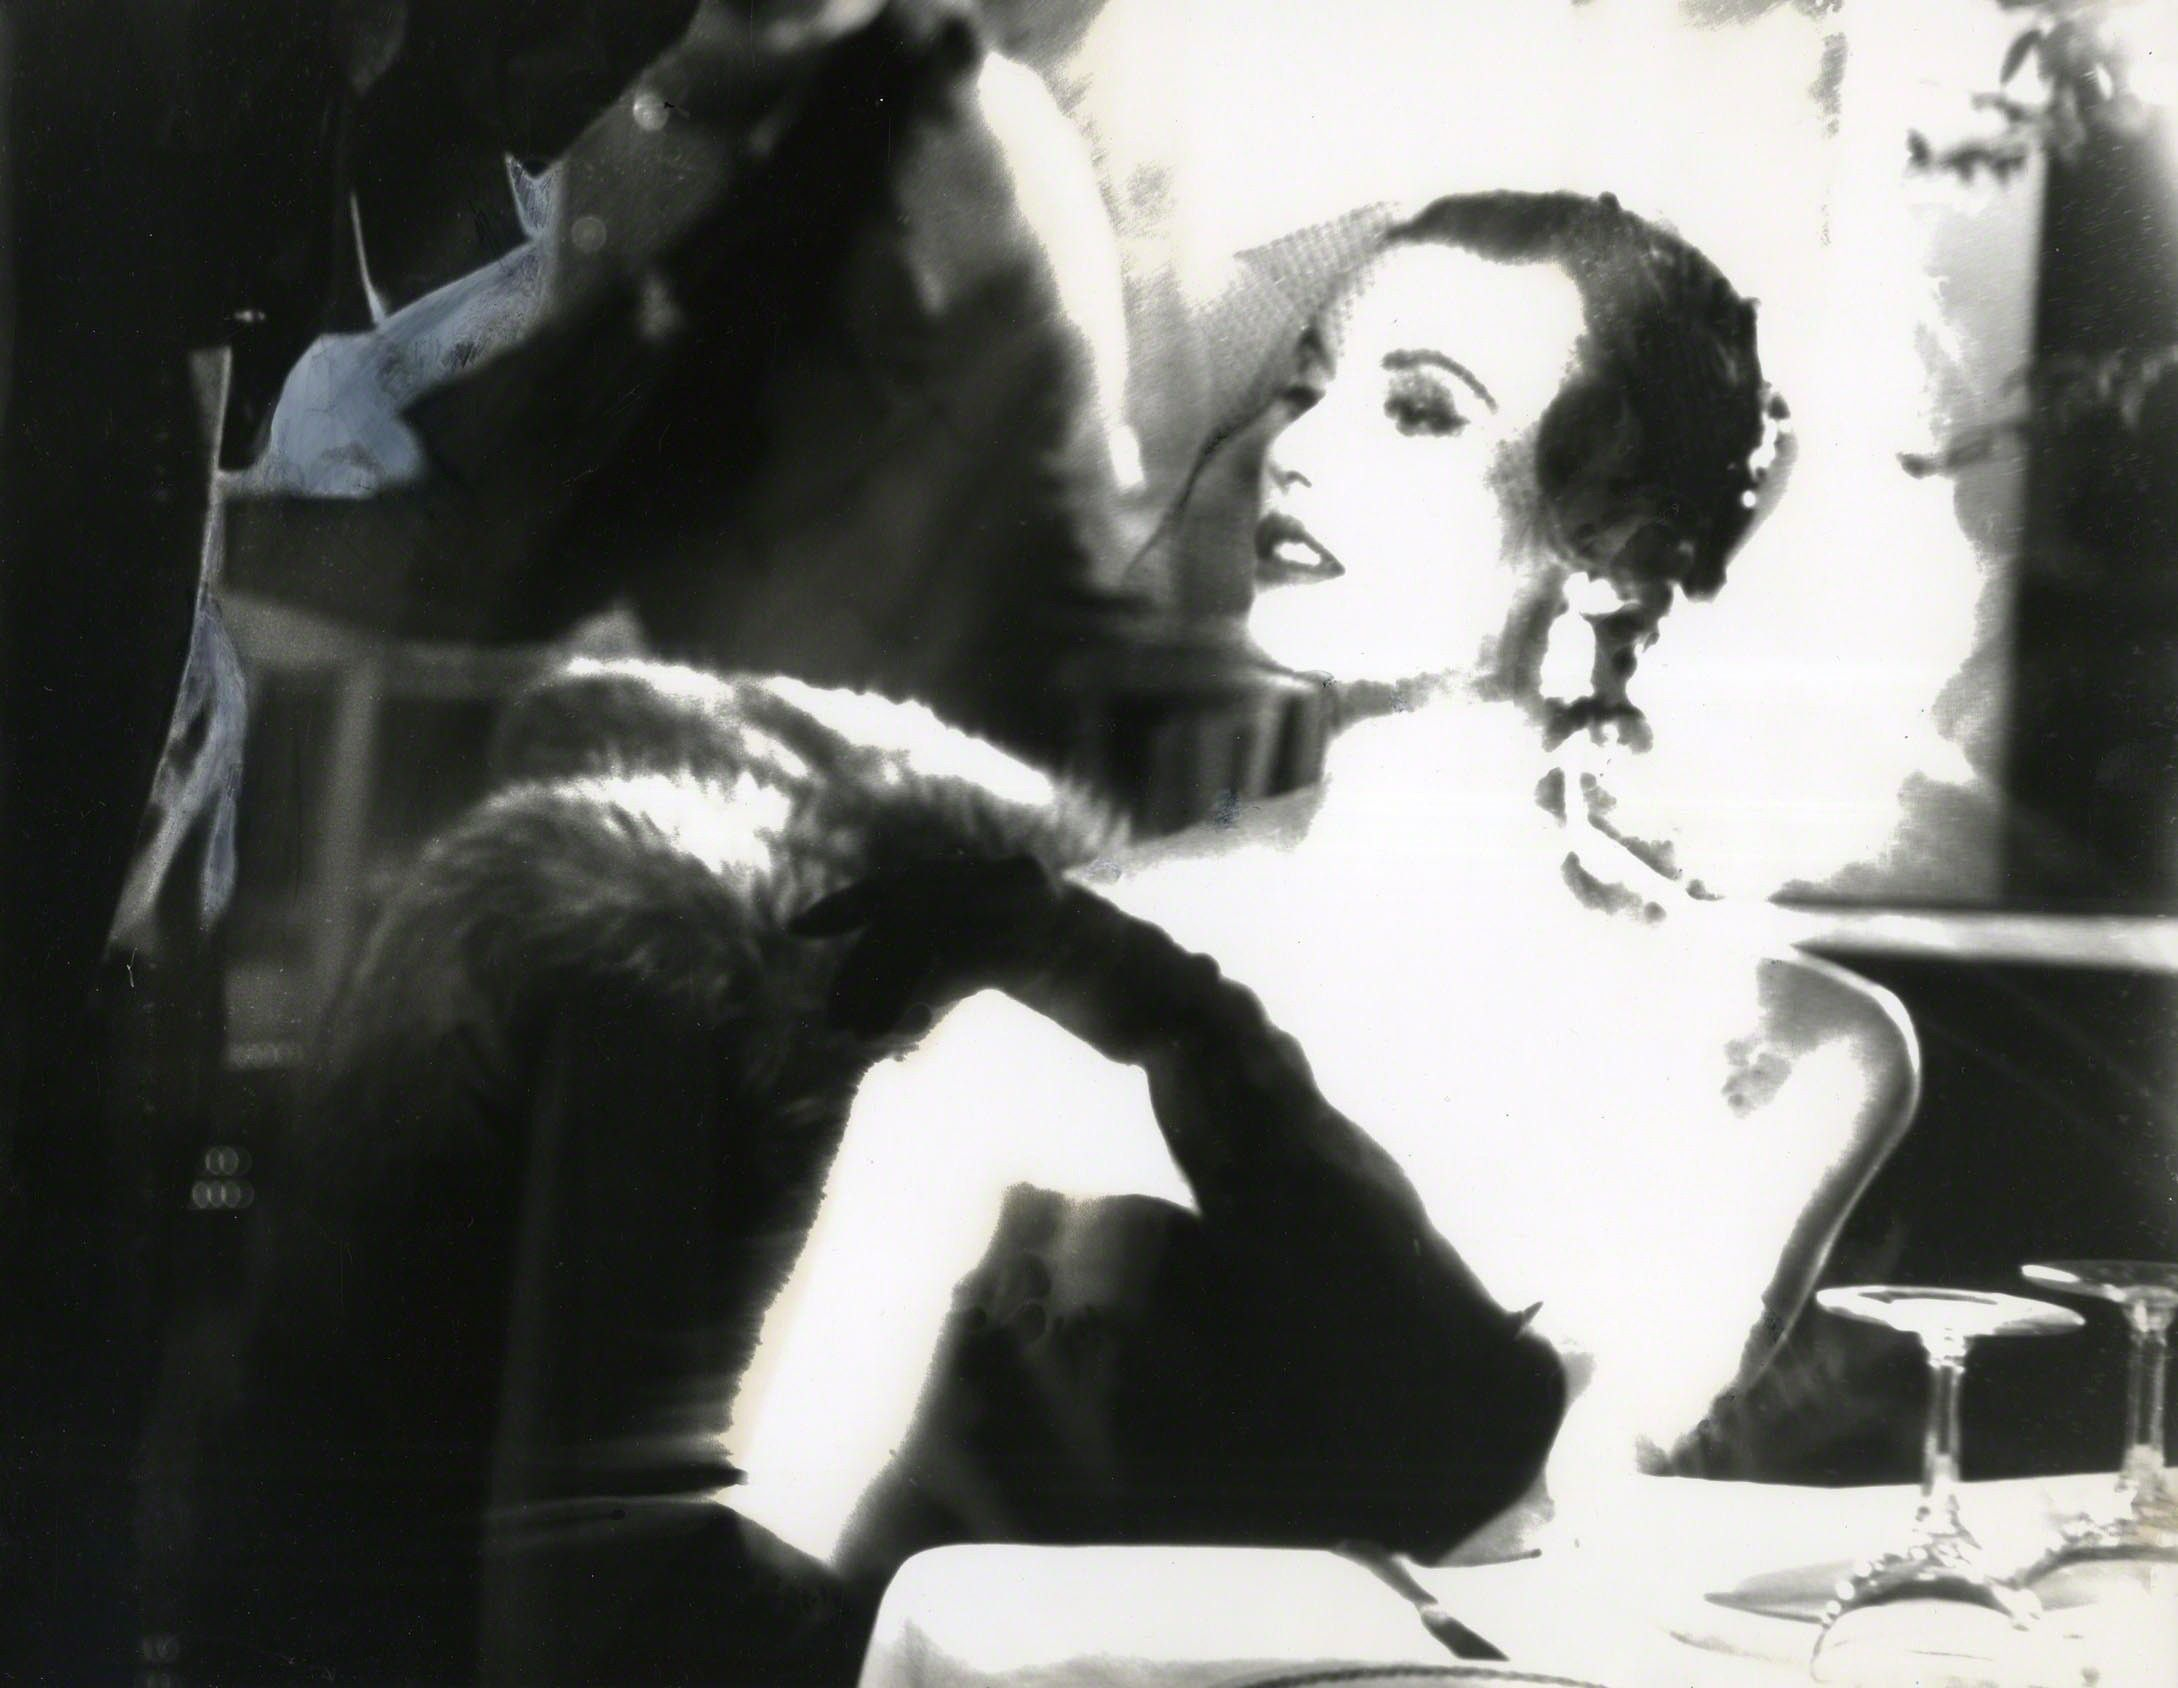 Lillian Bassman, 'Looking Backward - The Evenings Ahead, Betty Biehn', 1956, Edwynn Houk Gallery | Artsy